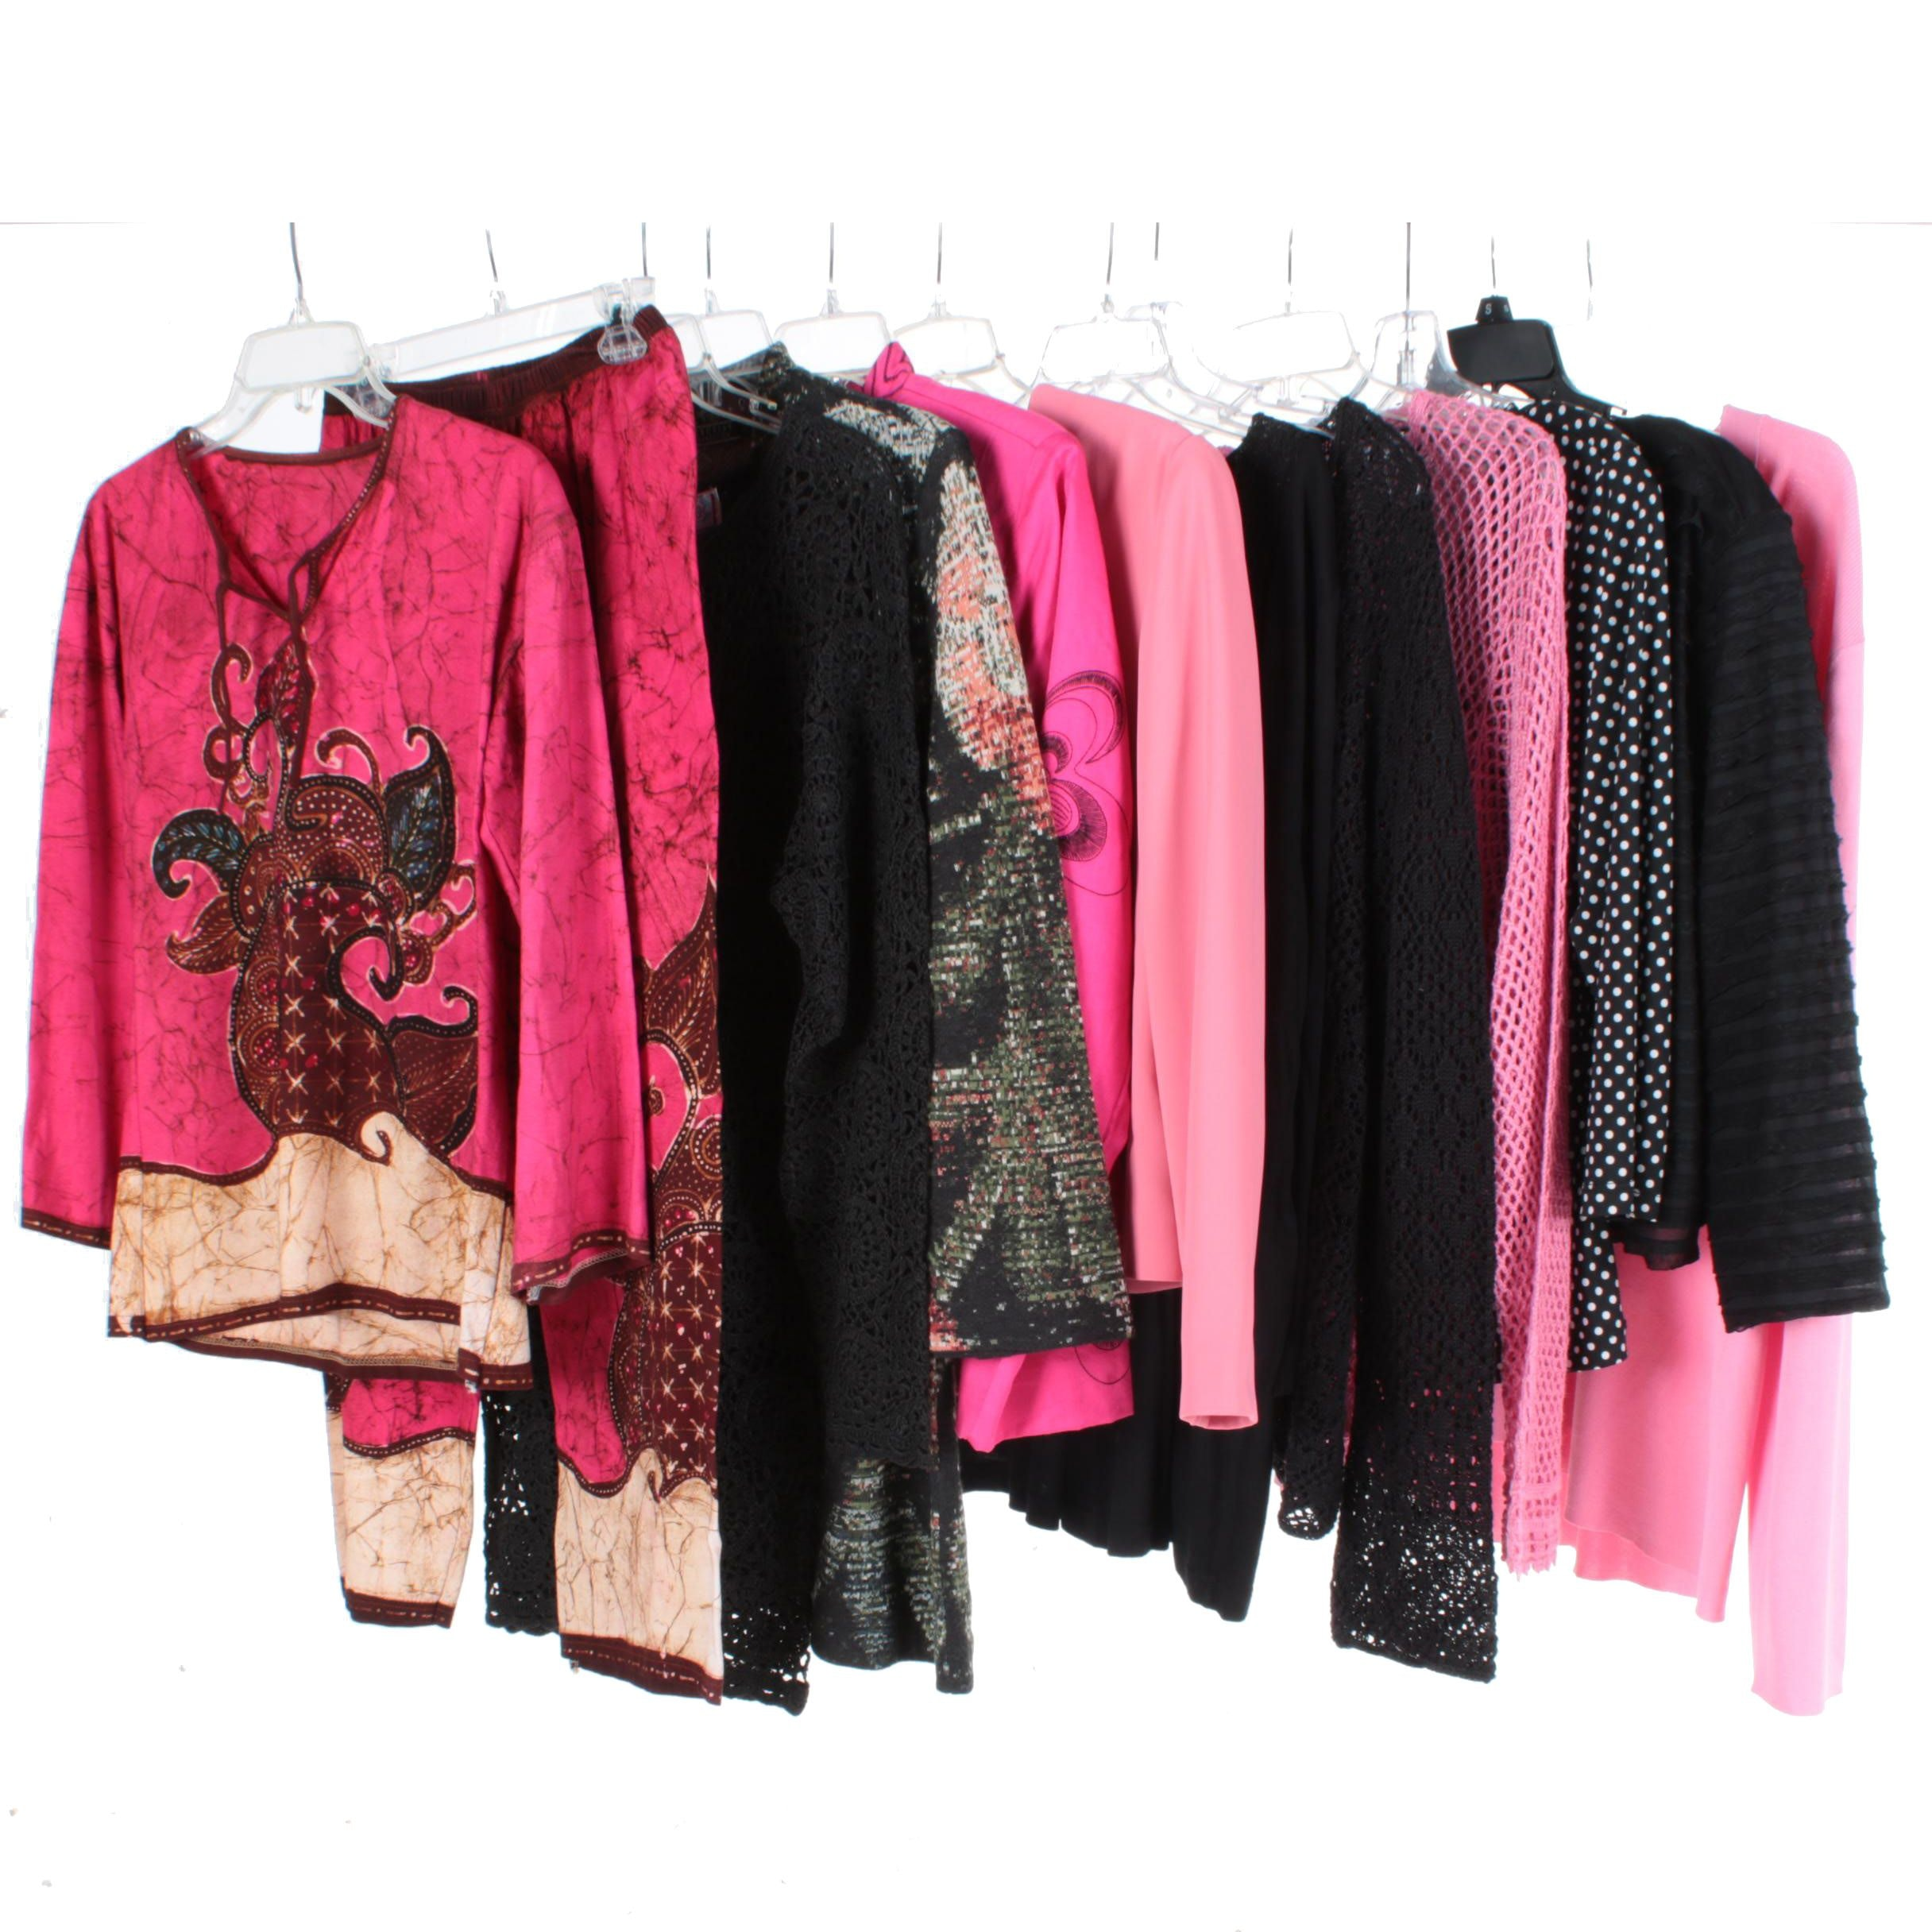 Women's Sweater, Jacket, and Separates Variety